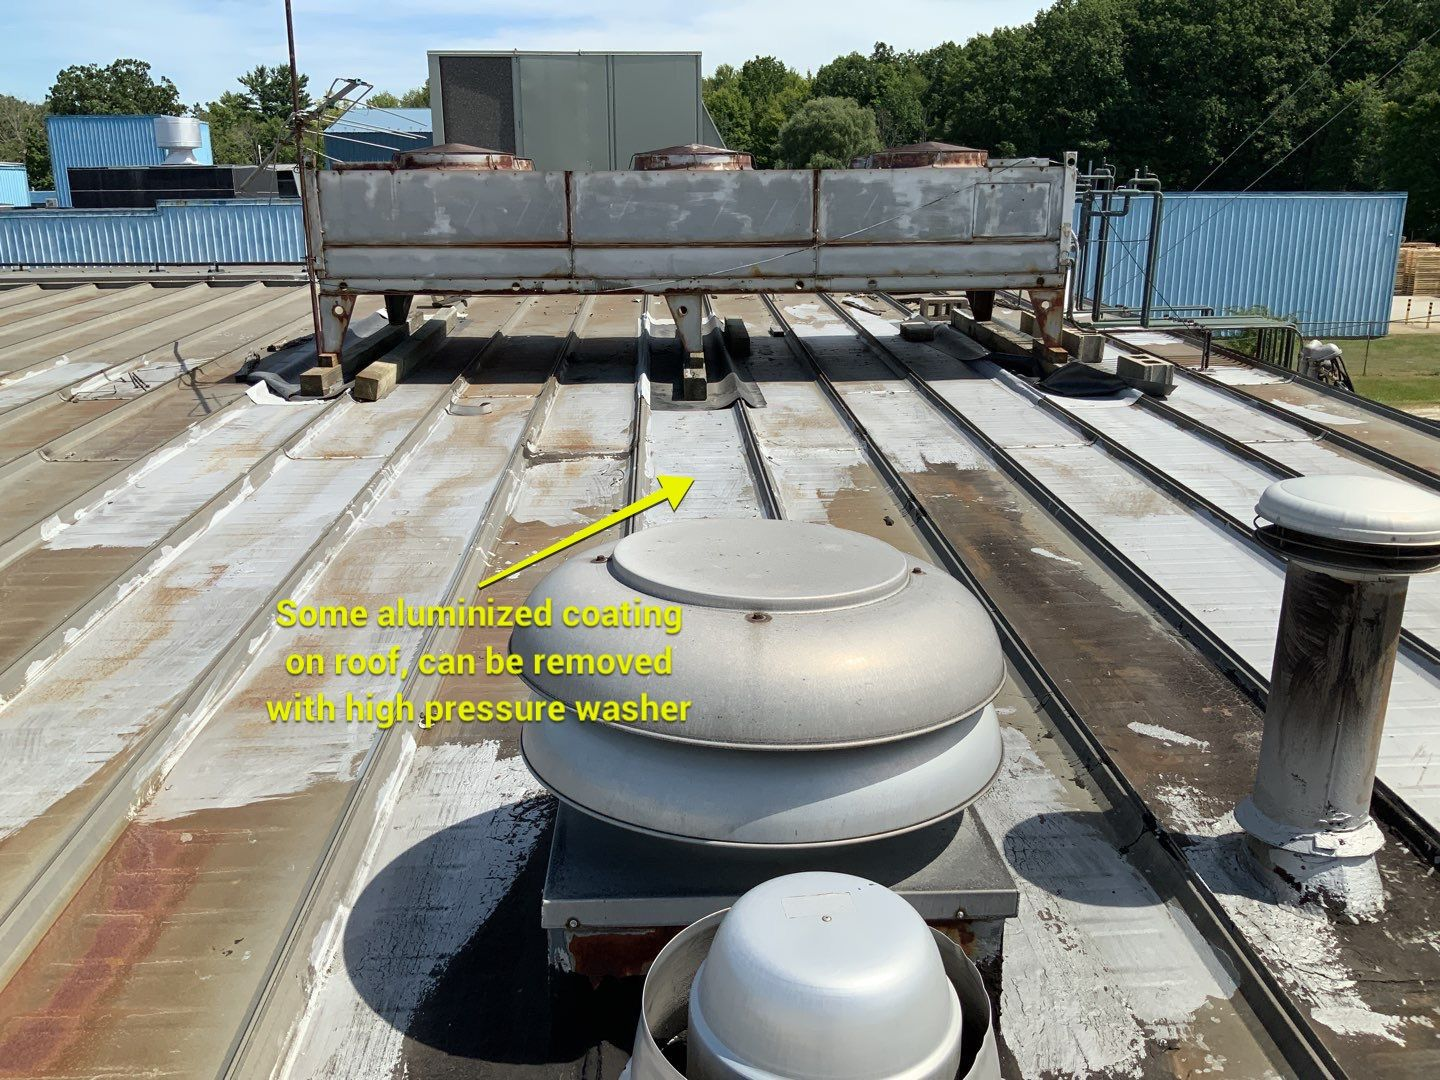 some aluminized coating on roof, can be removed with high pressure washer